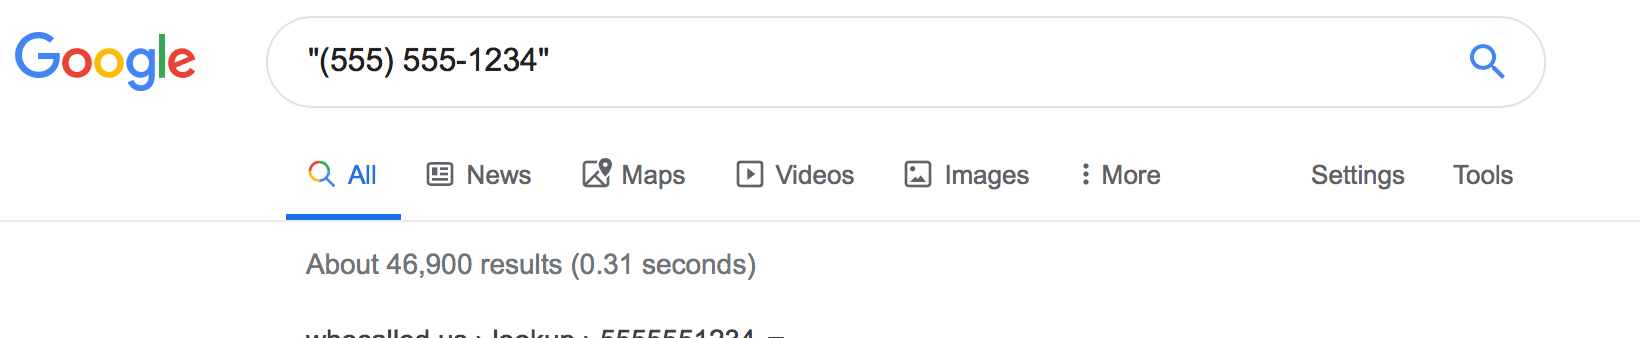 Searching for an Exact Phone Number with Google